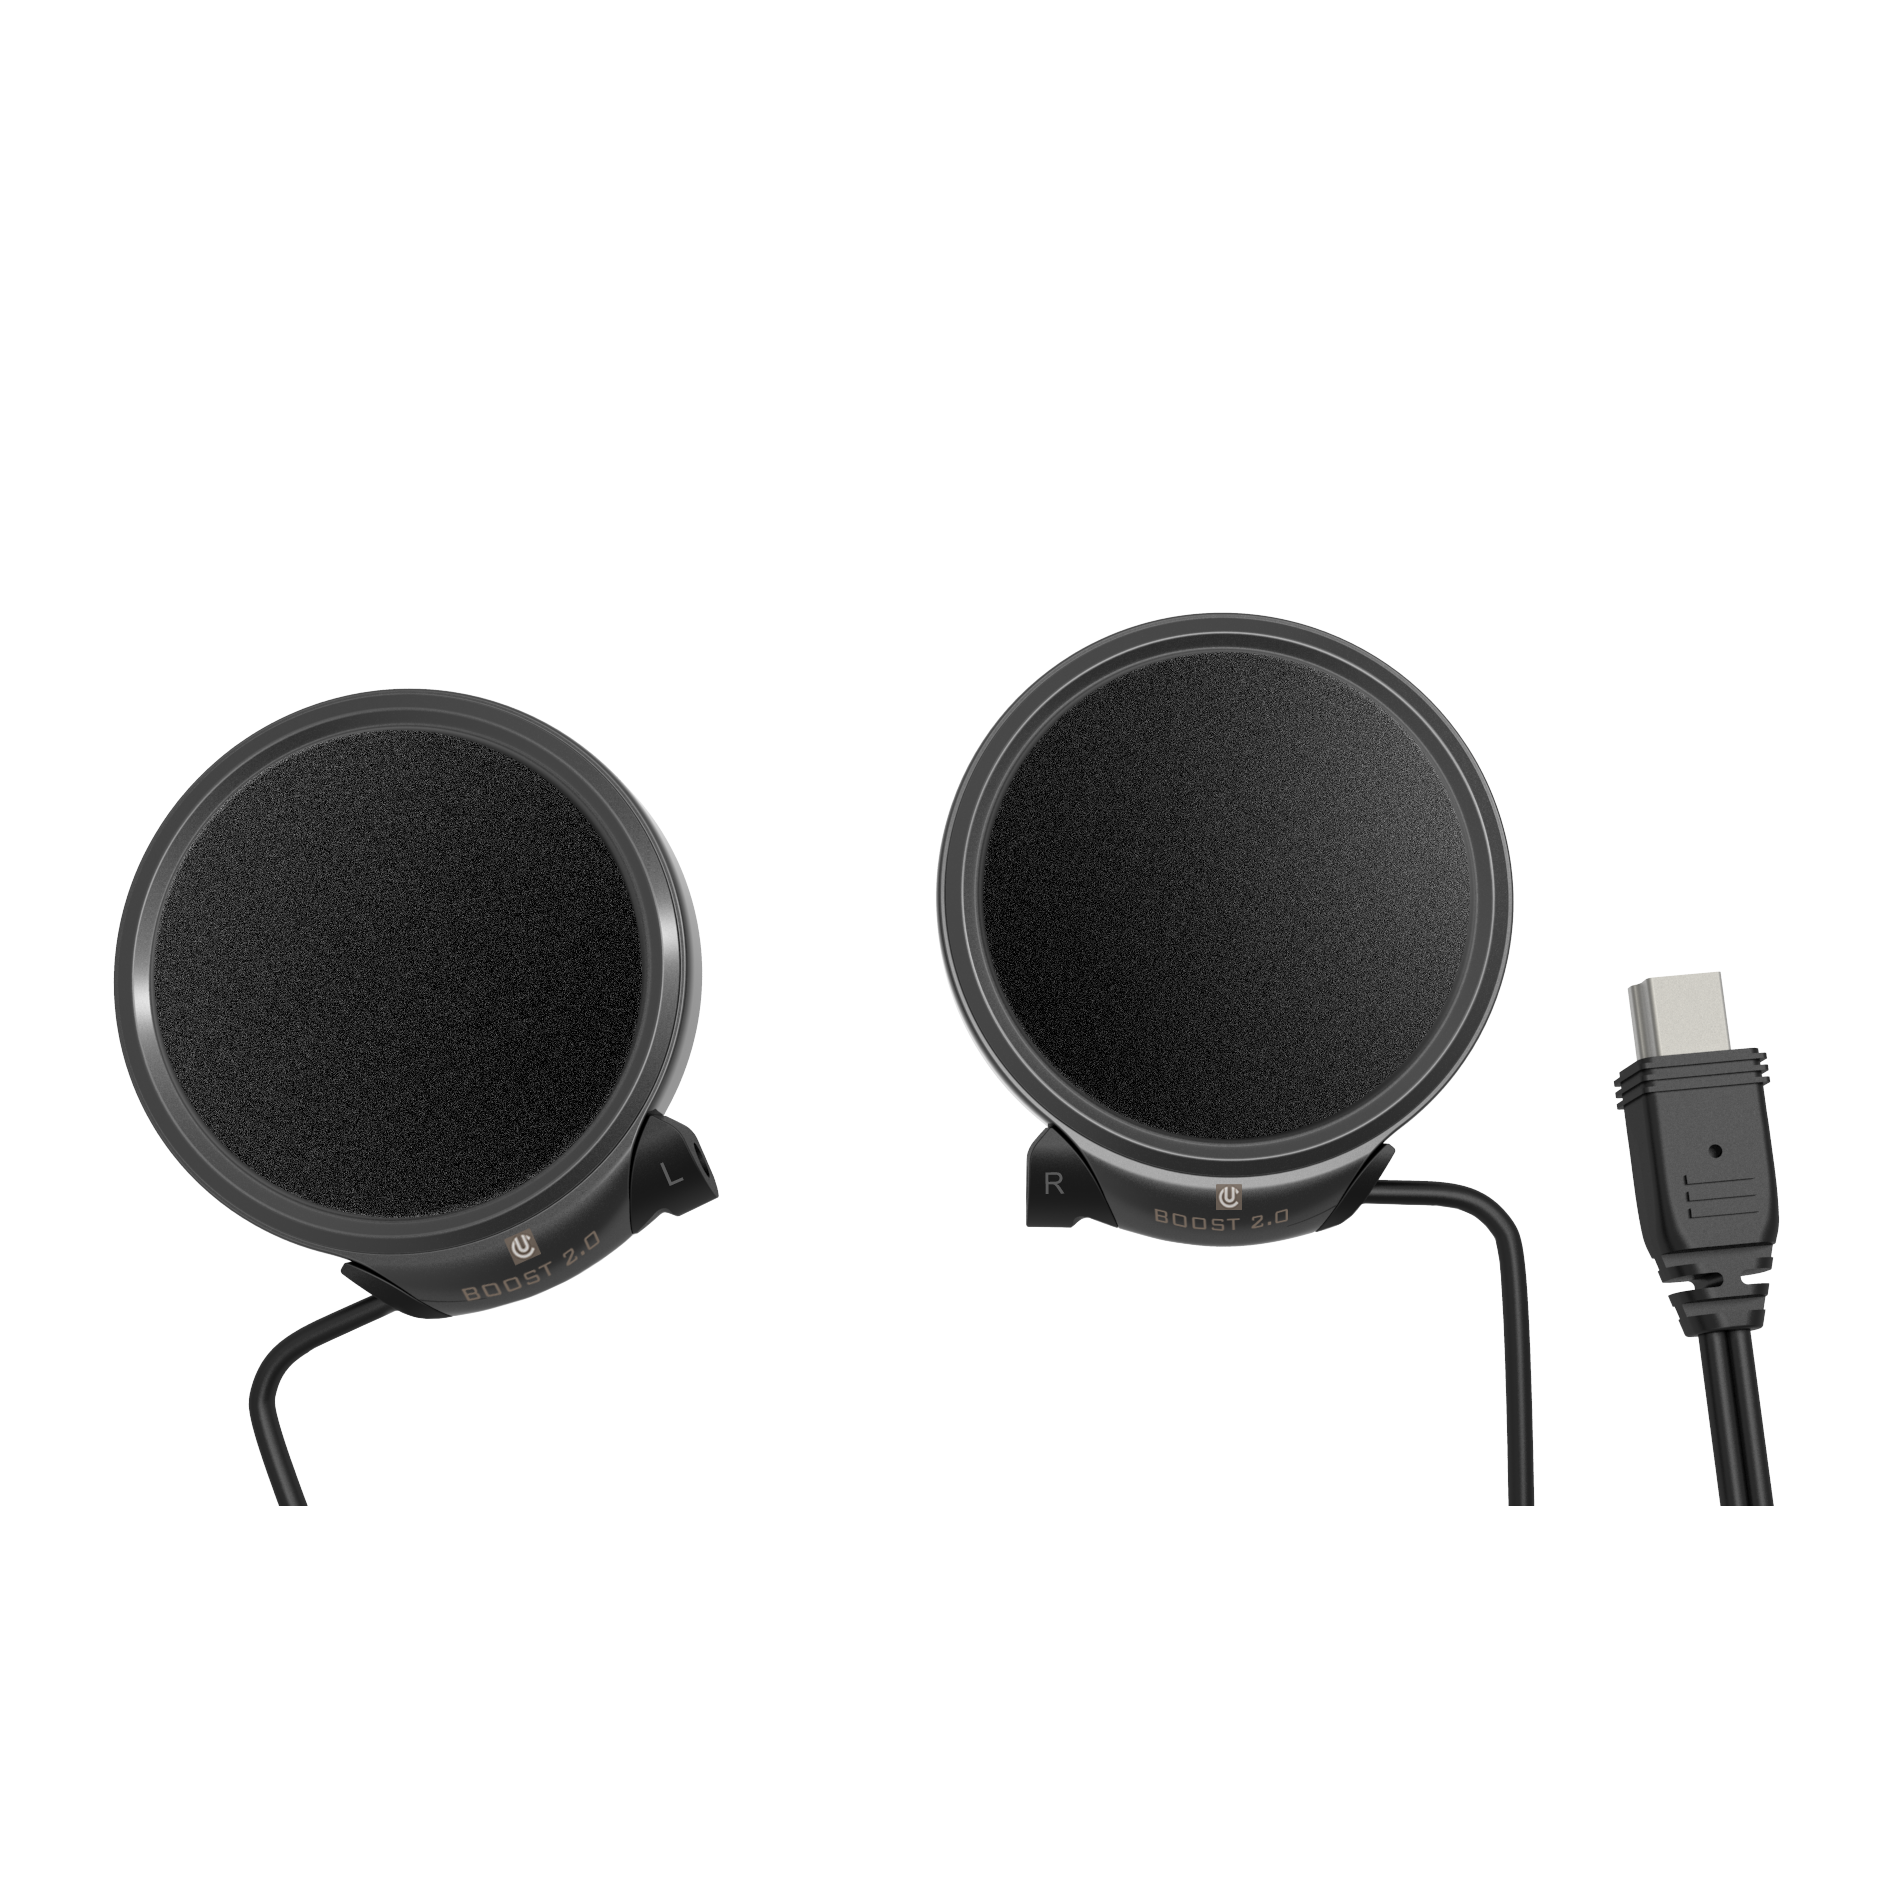 Boost 2 0 Helmet Speakers Microphones By Uclear